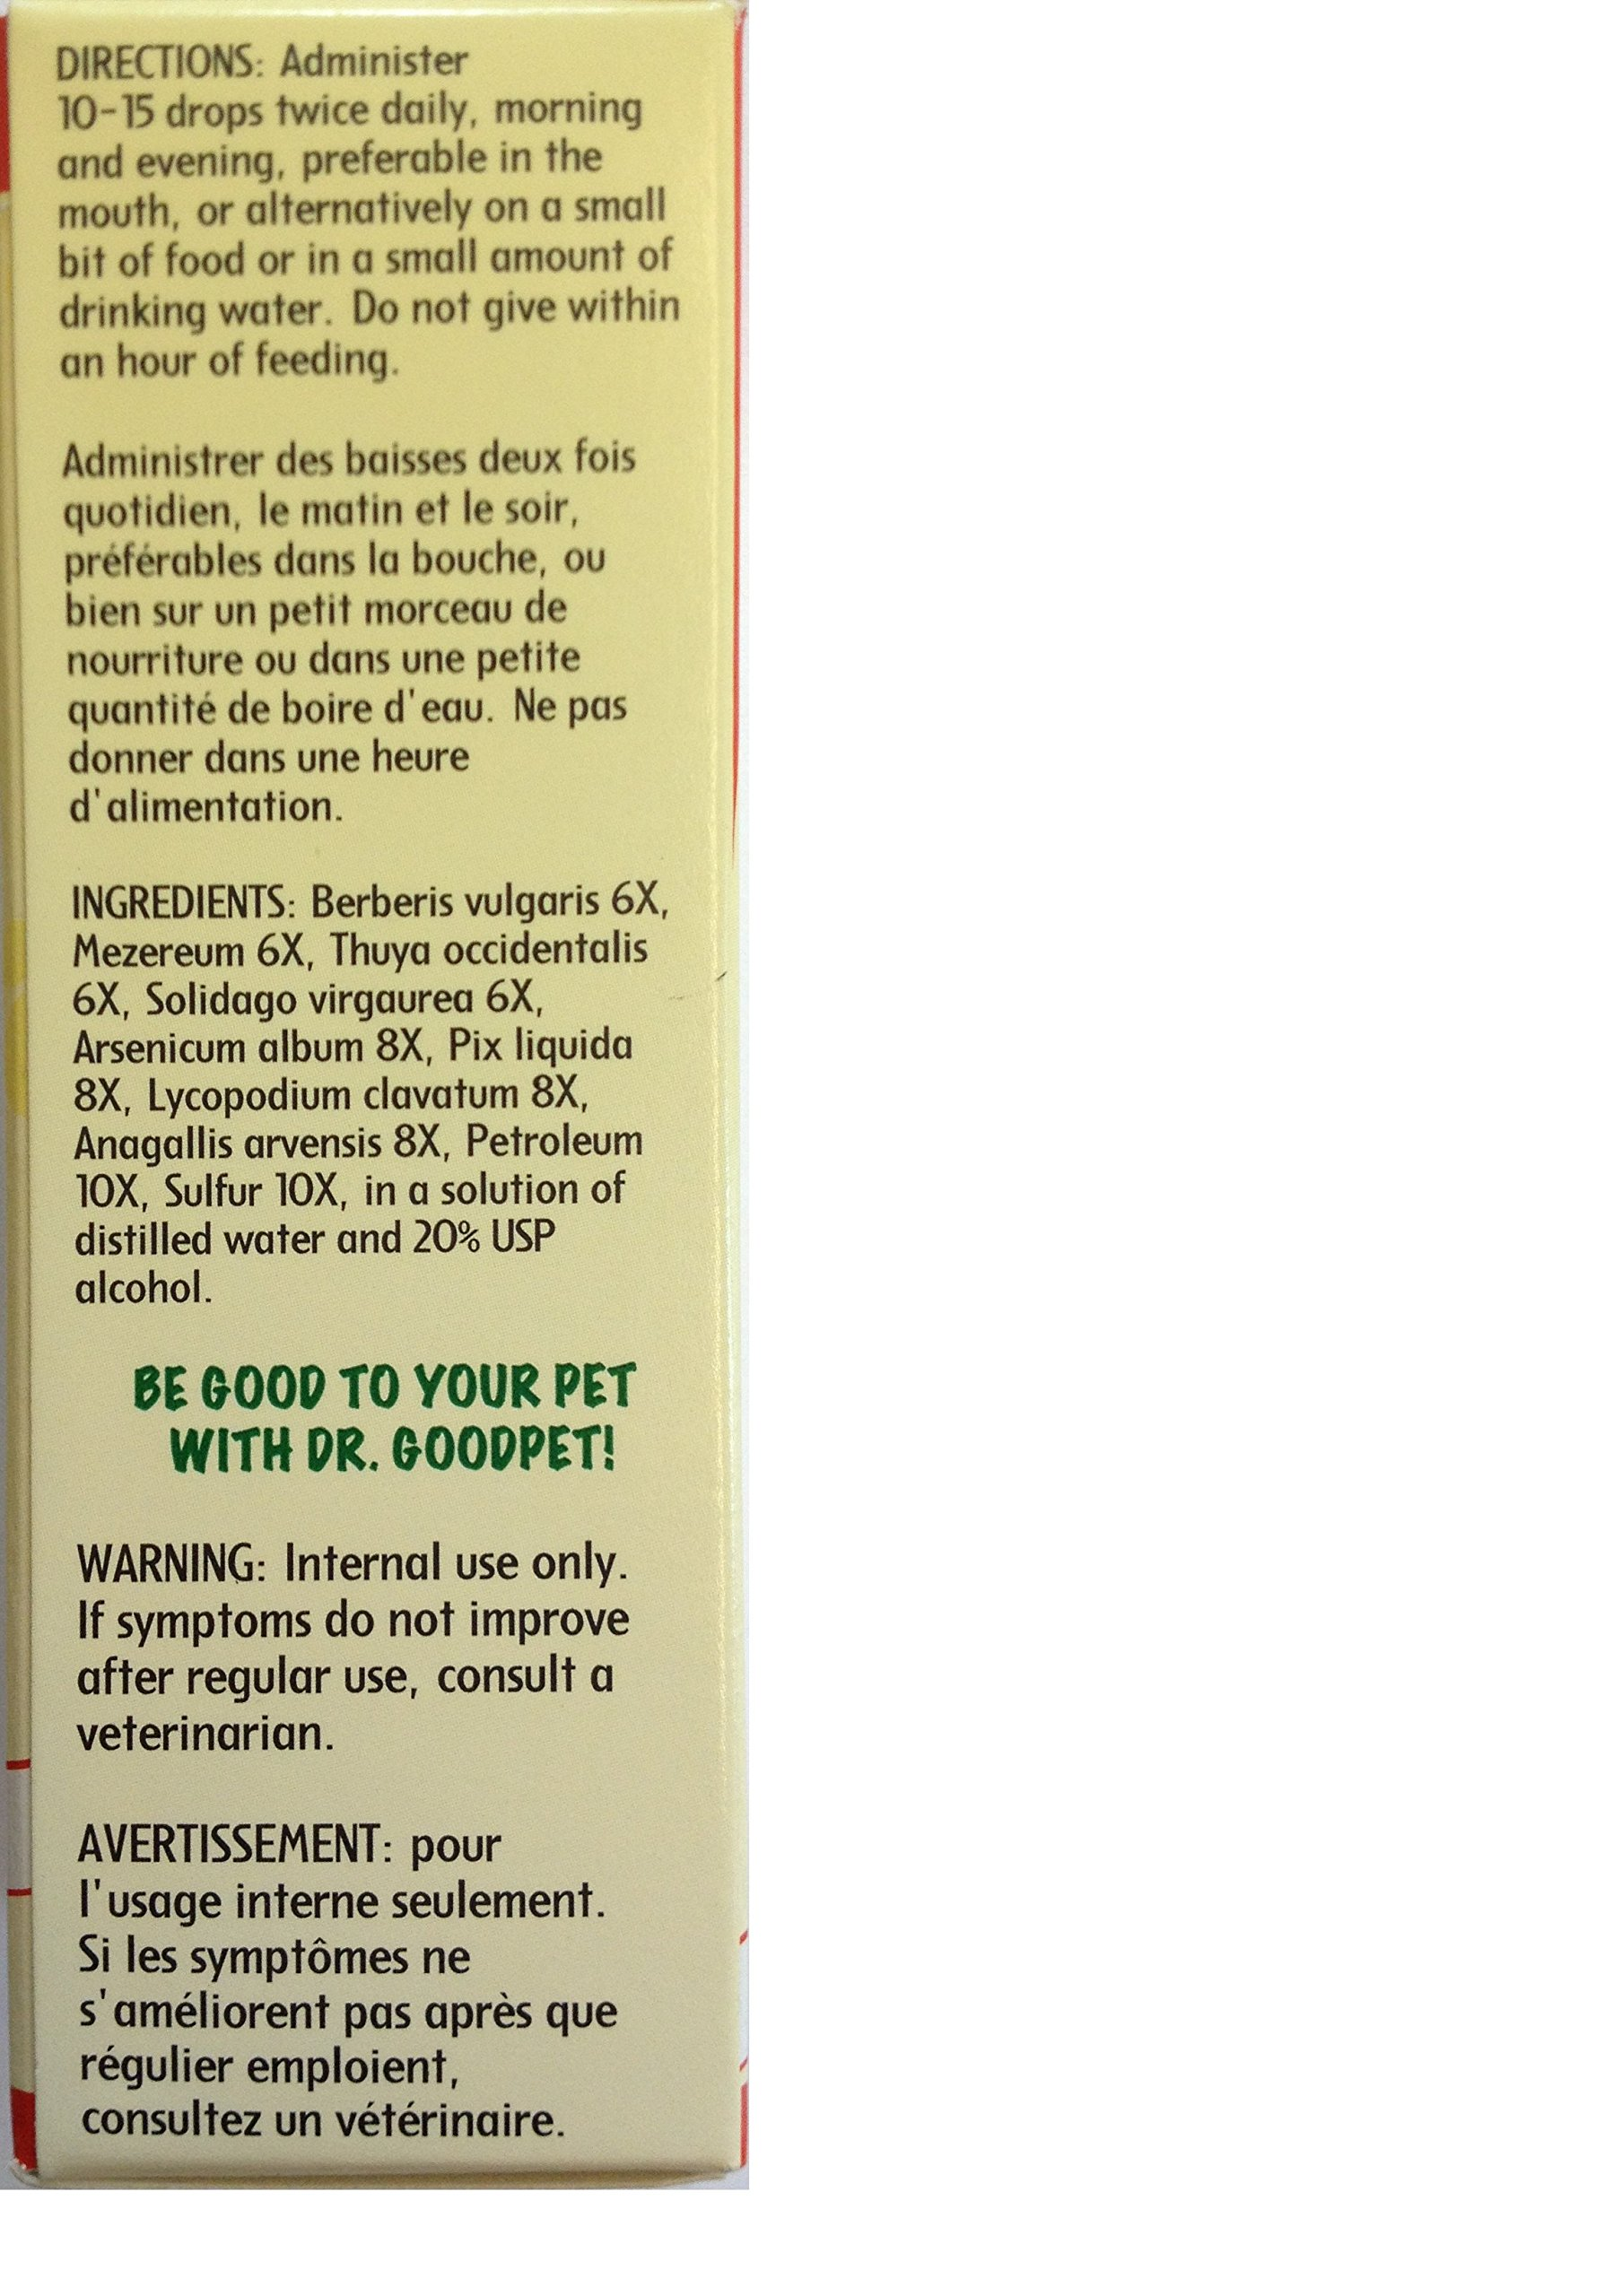 Dr. Goodpet Scratch Free - All Natural Treatment for Skin Problems, Hot Spots & Irritation